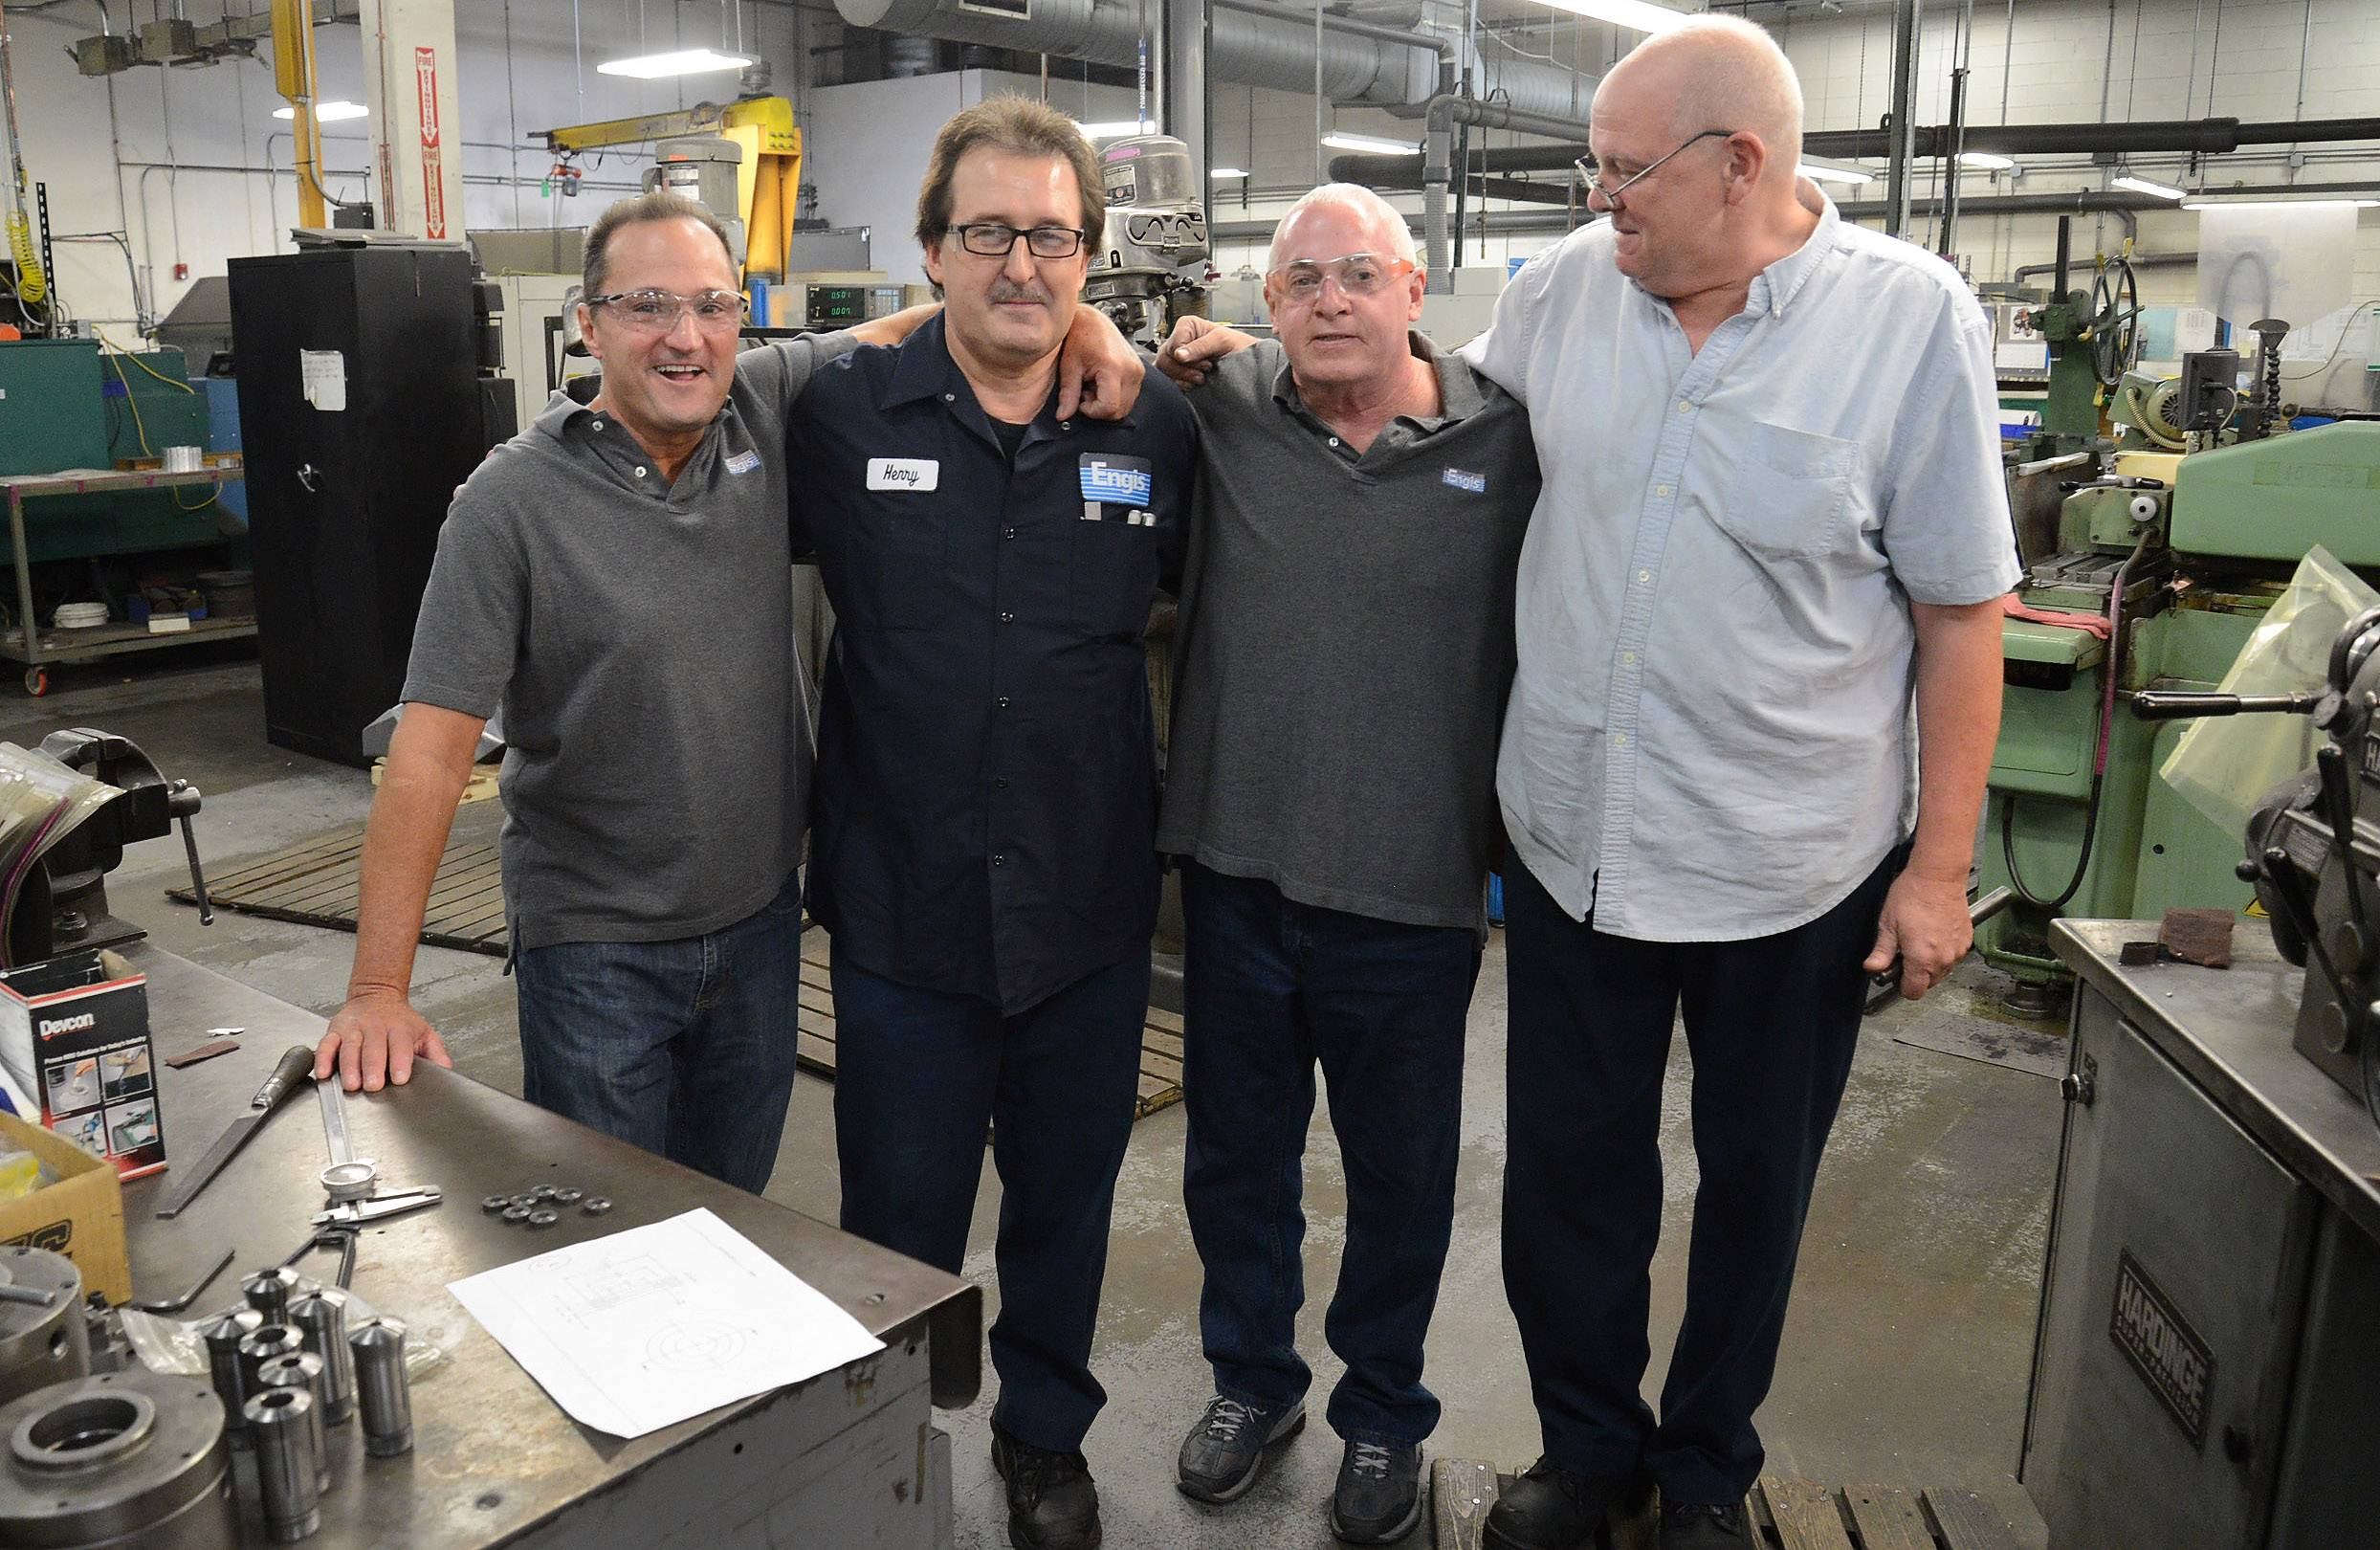 Engis Corp. co-workers from left Greg Nania, Henry Kosinski, Doug Jones and Ron Ghiselli reunite at Kosinski's workstation where they found him after he experienced cardiac arrest and assisted on saving his life.